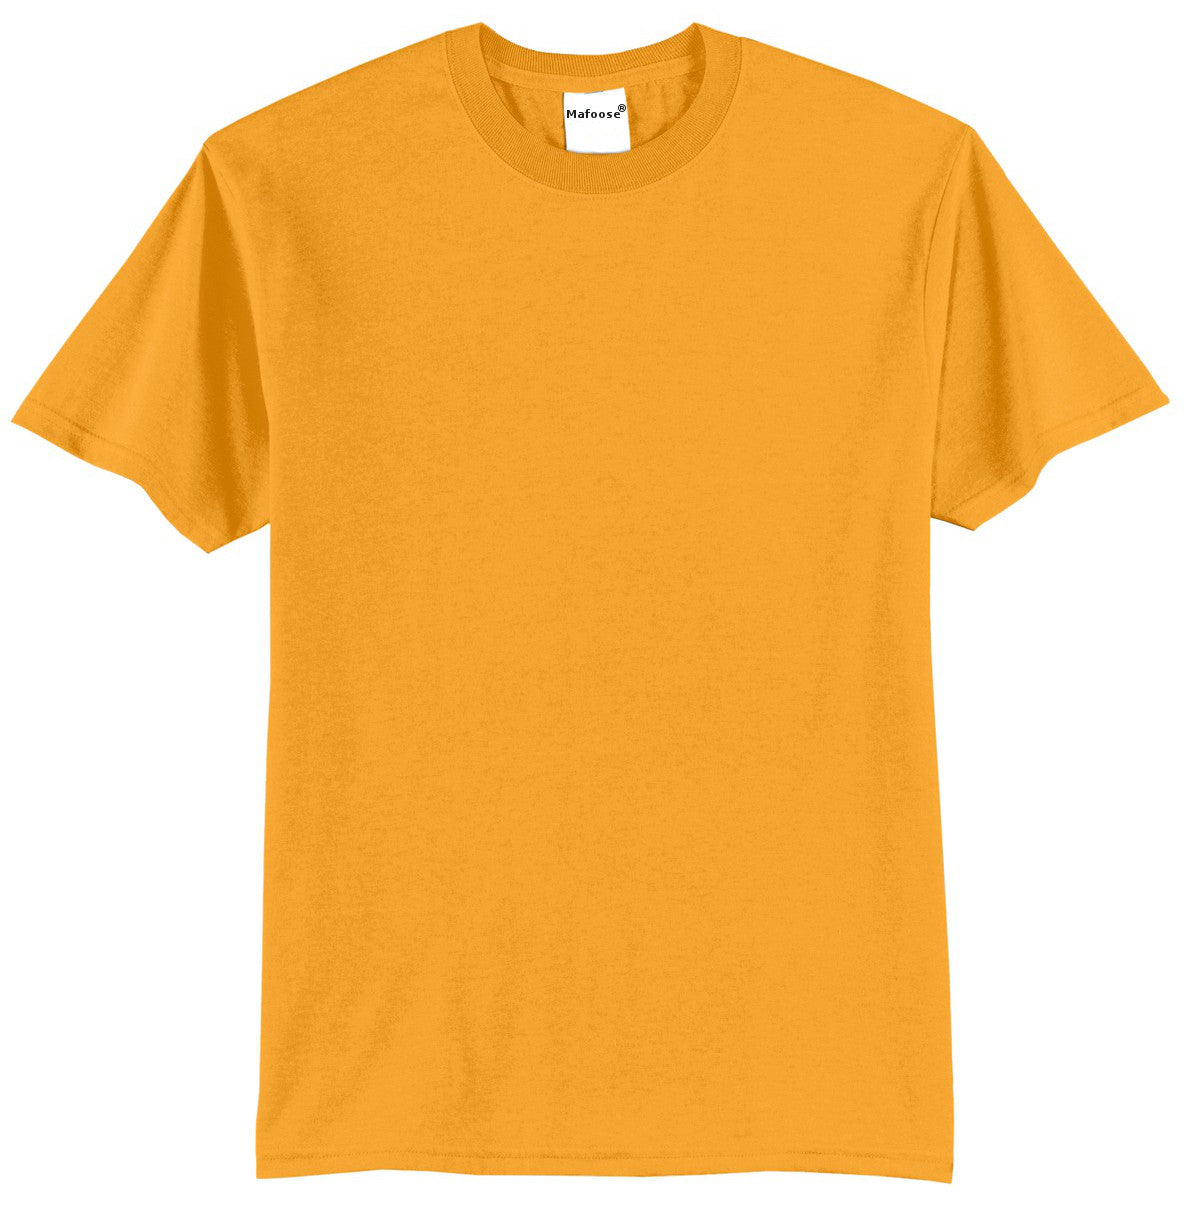 Mafoose Men's Core Blend Tee Shirt Gold